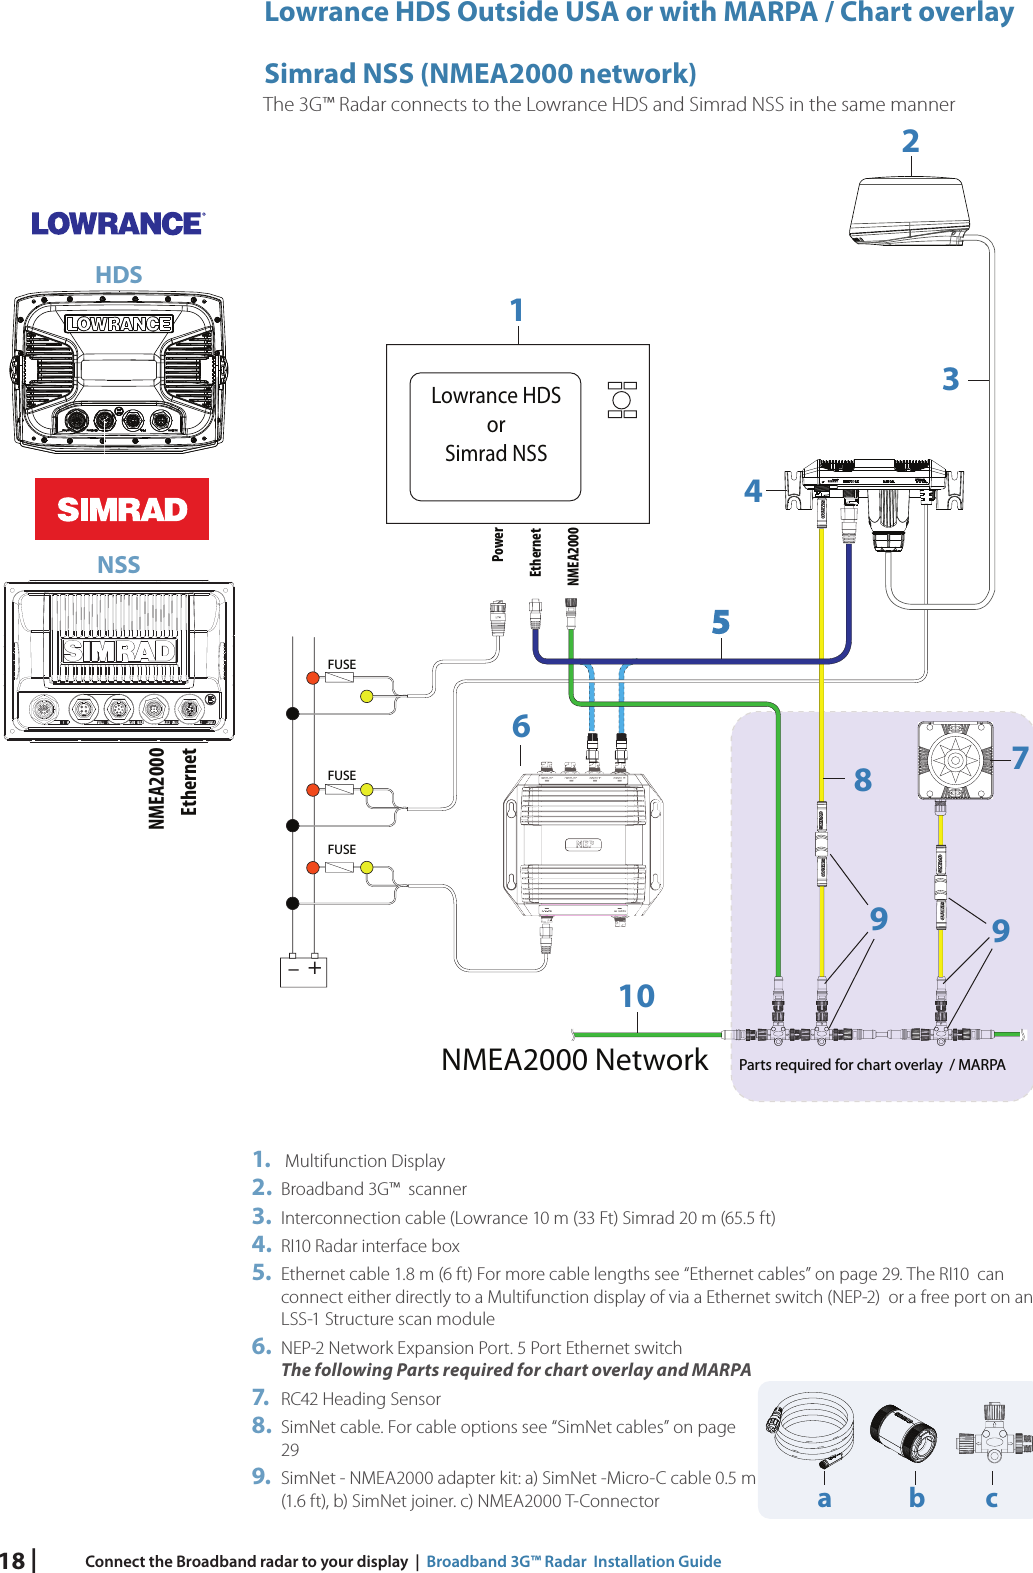 Navico 3G4G FMCW RADAR WITH LINEAR FREQUENCY SWEEP User Manual